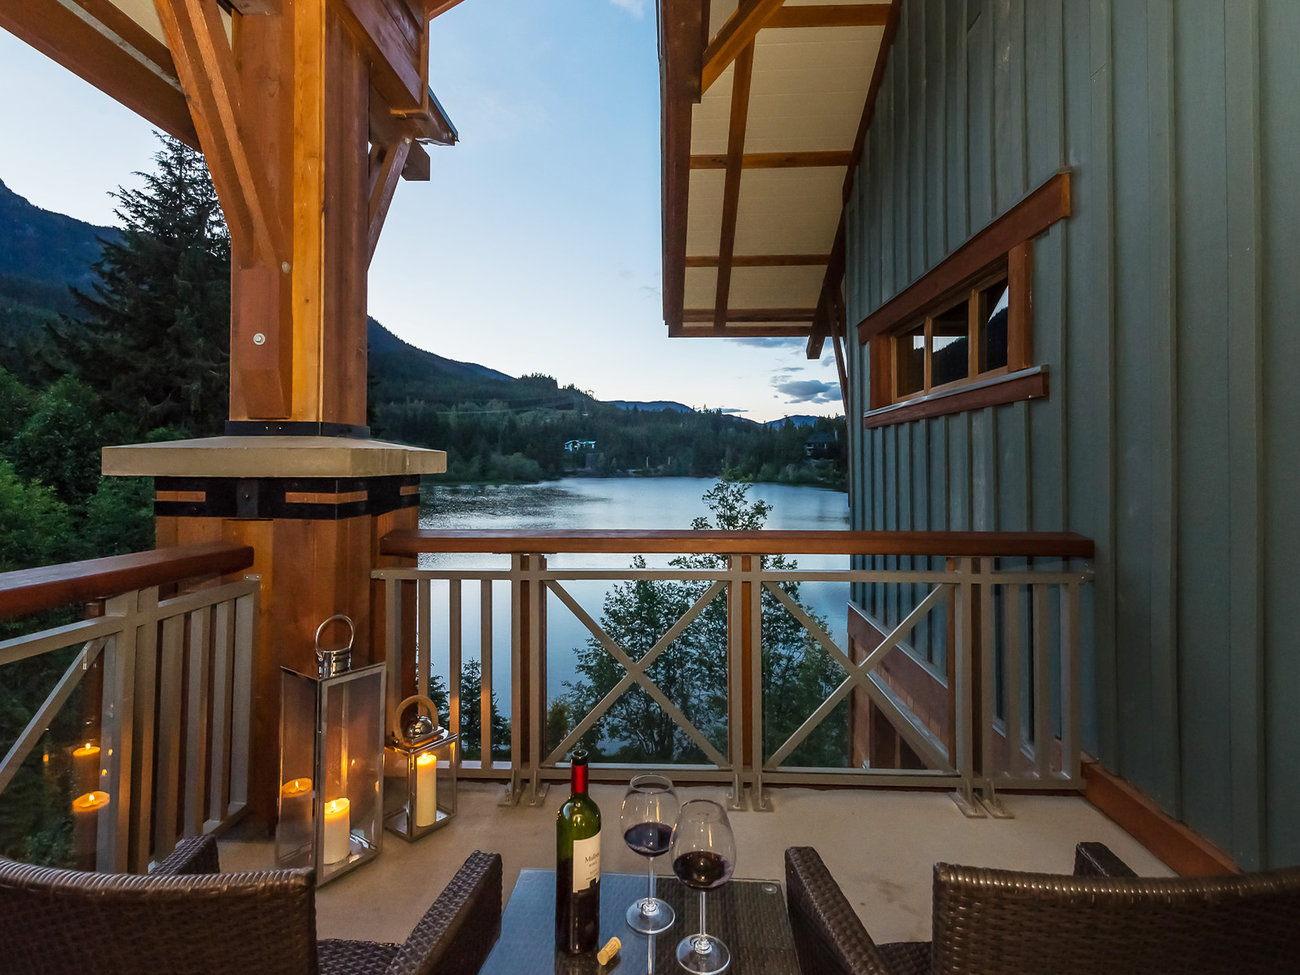 Nita Lake Lodge Boutique Hotel in Whistler